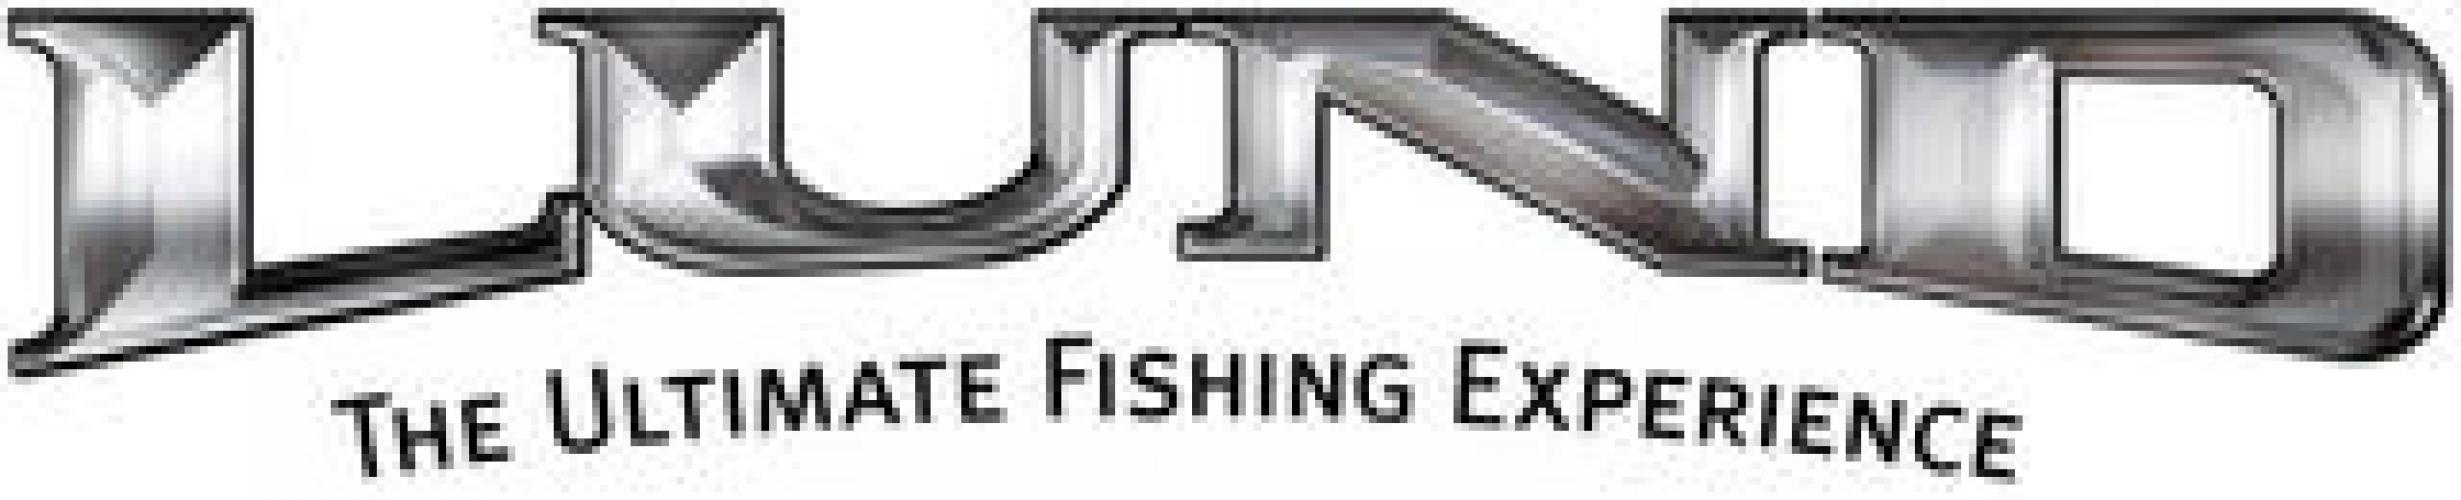 The Ultimate Fishing Adventure by Lund Boats next episode air date poster